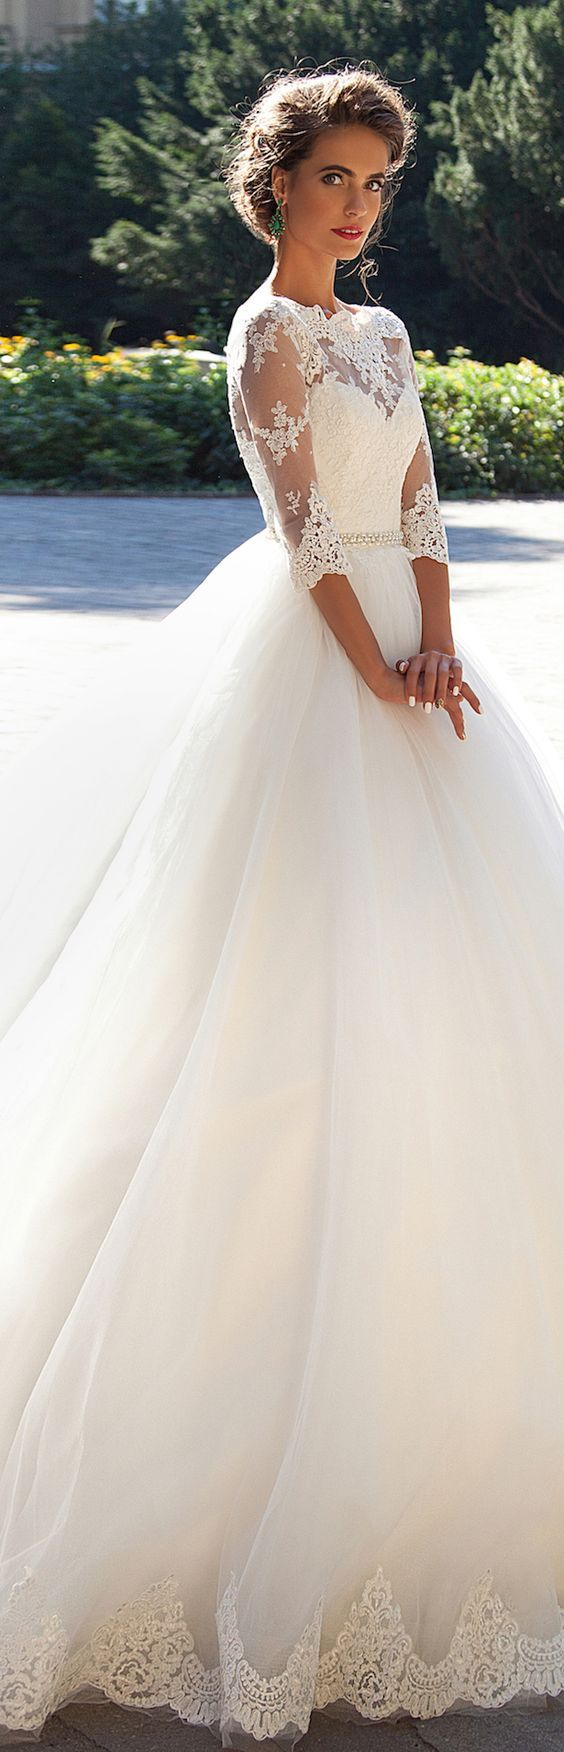 winter wedding dresses winter wedding dresses Stunning Long Sleeve Wedding Dresses